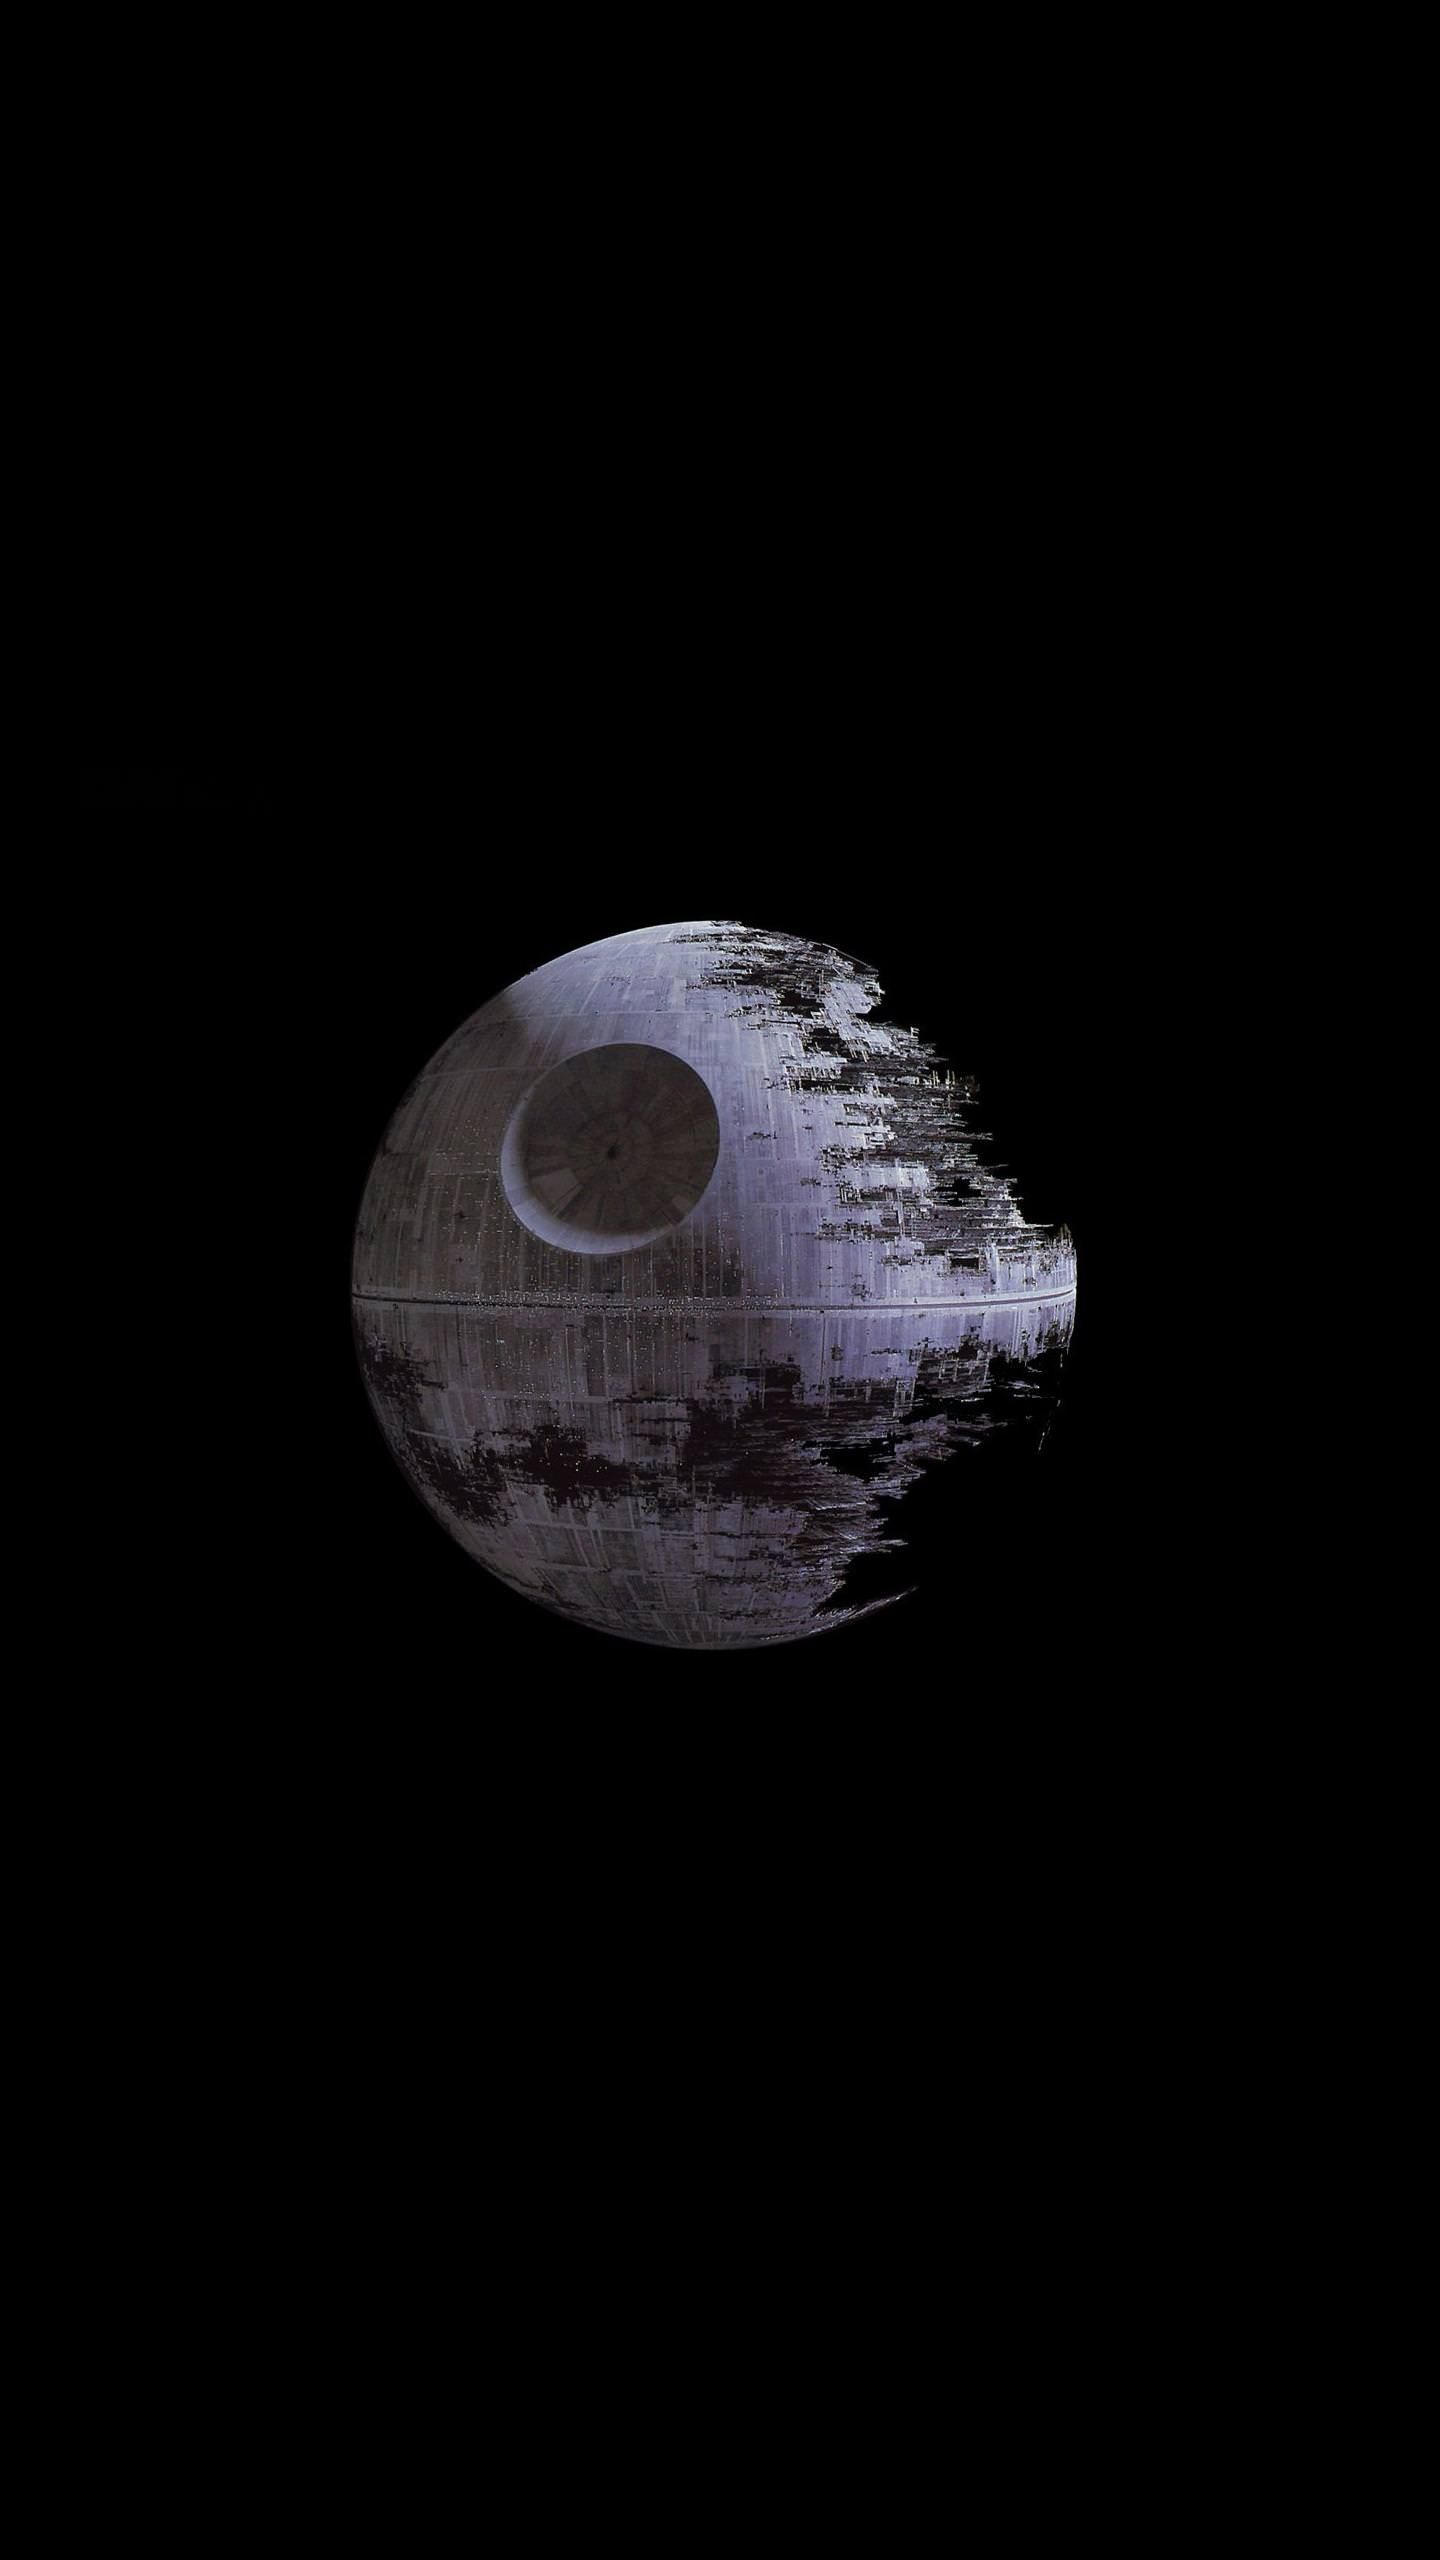 Amoled Wallpapers Star Wars Wallpaper Star Wars Background Star Wars Pictures